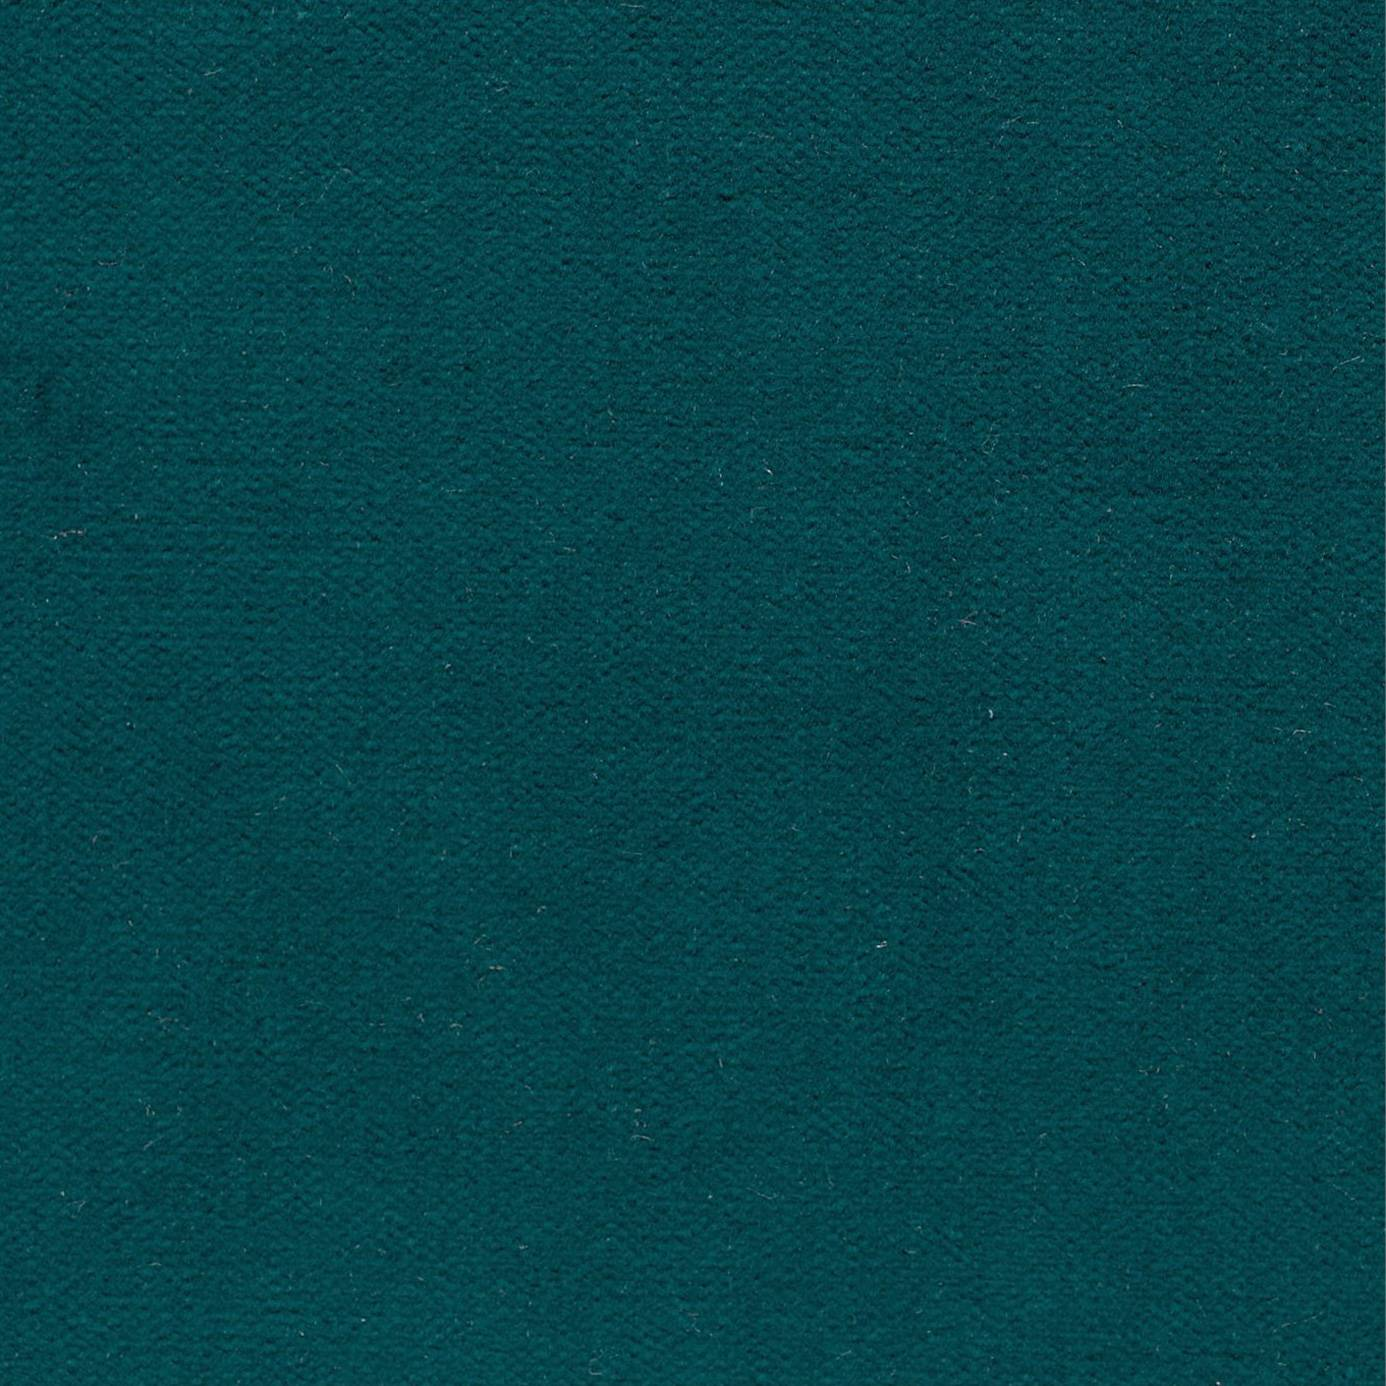 Peacock Blue Fabric - Bing images - photo#18